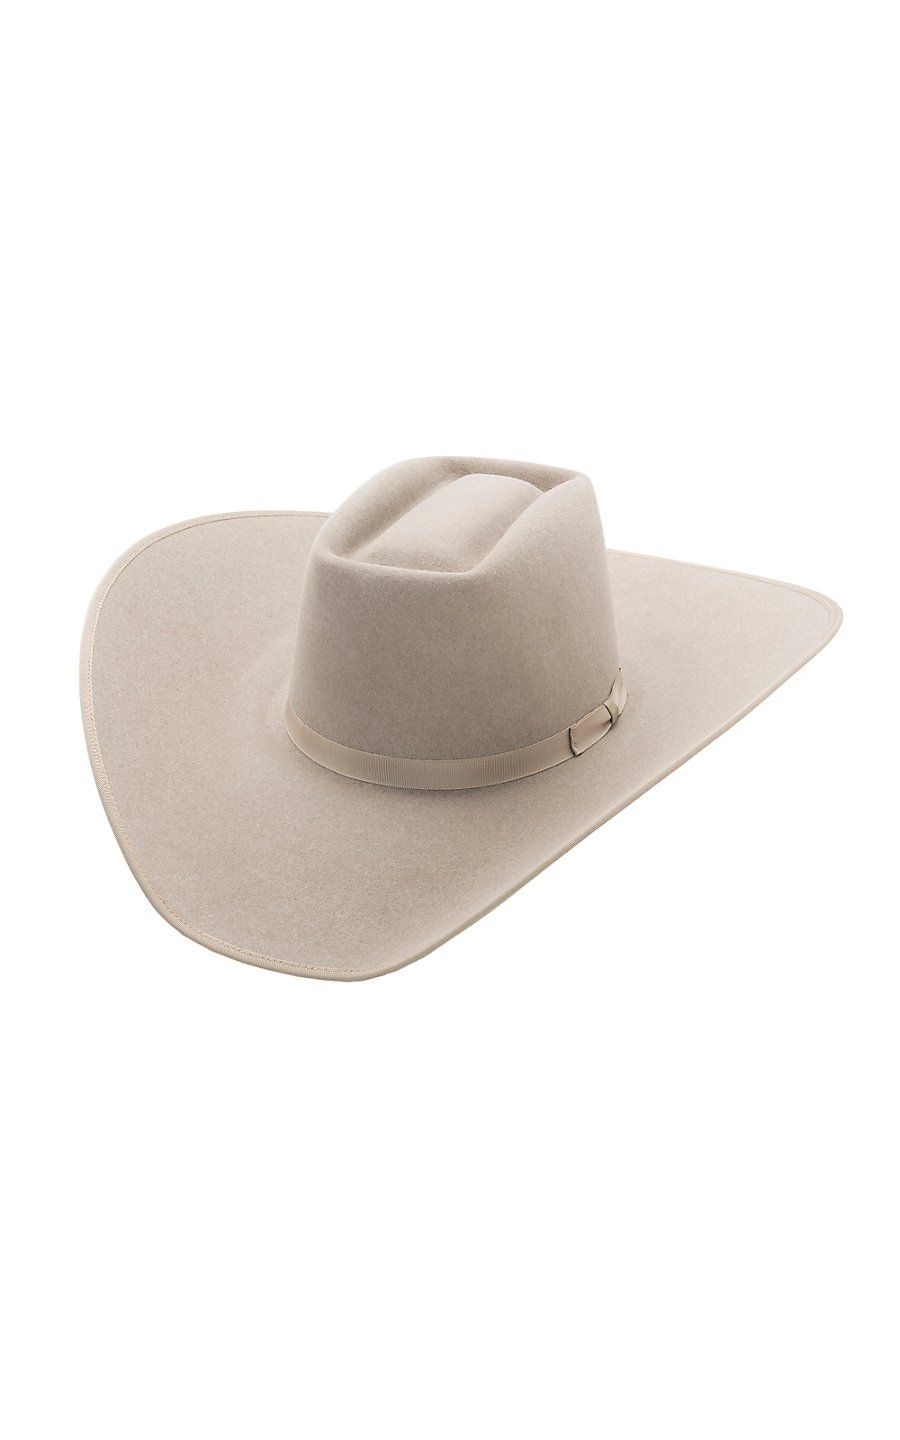 e0d46f5fa Rodeo King® 10X Brick Ash Bound Edge Felt Cowboy Hat- BRK10AS475 ...